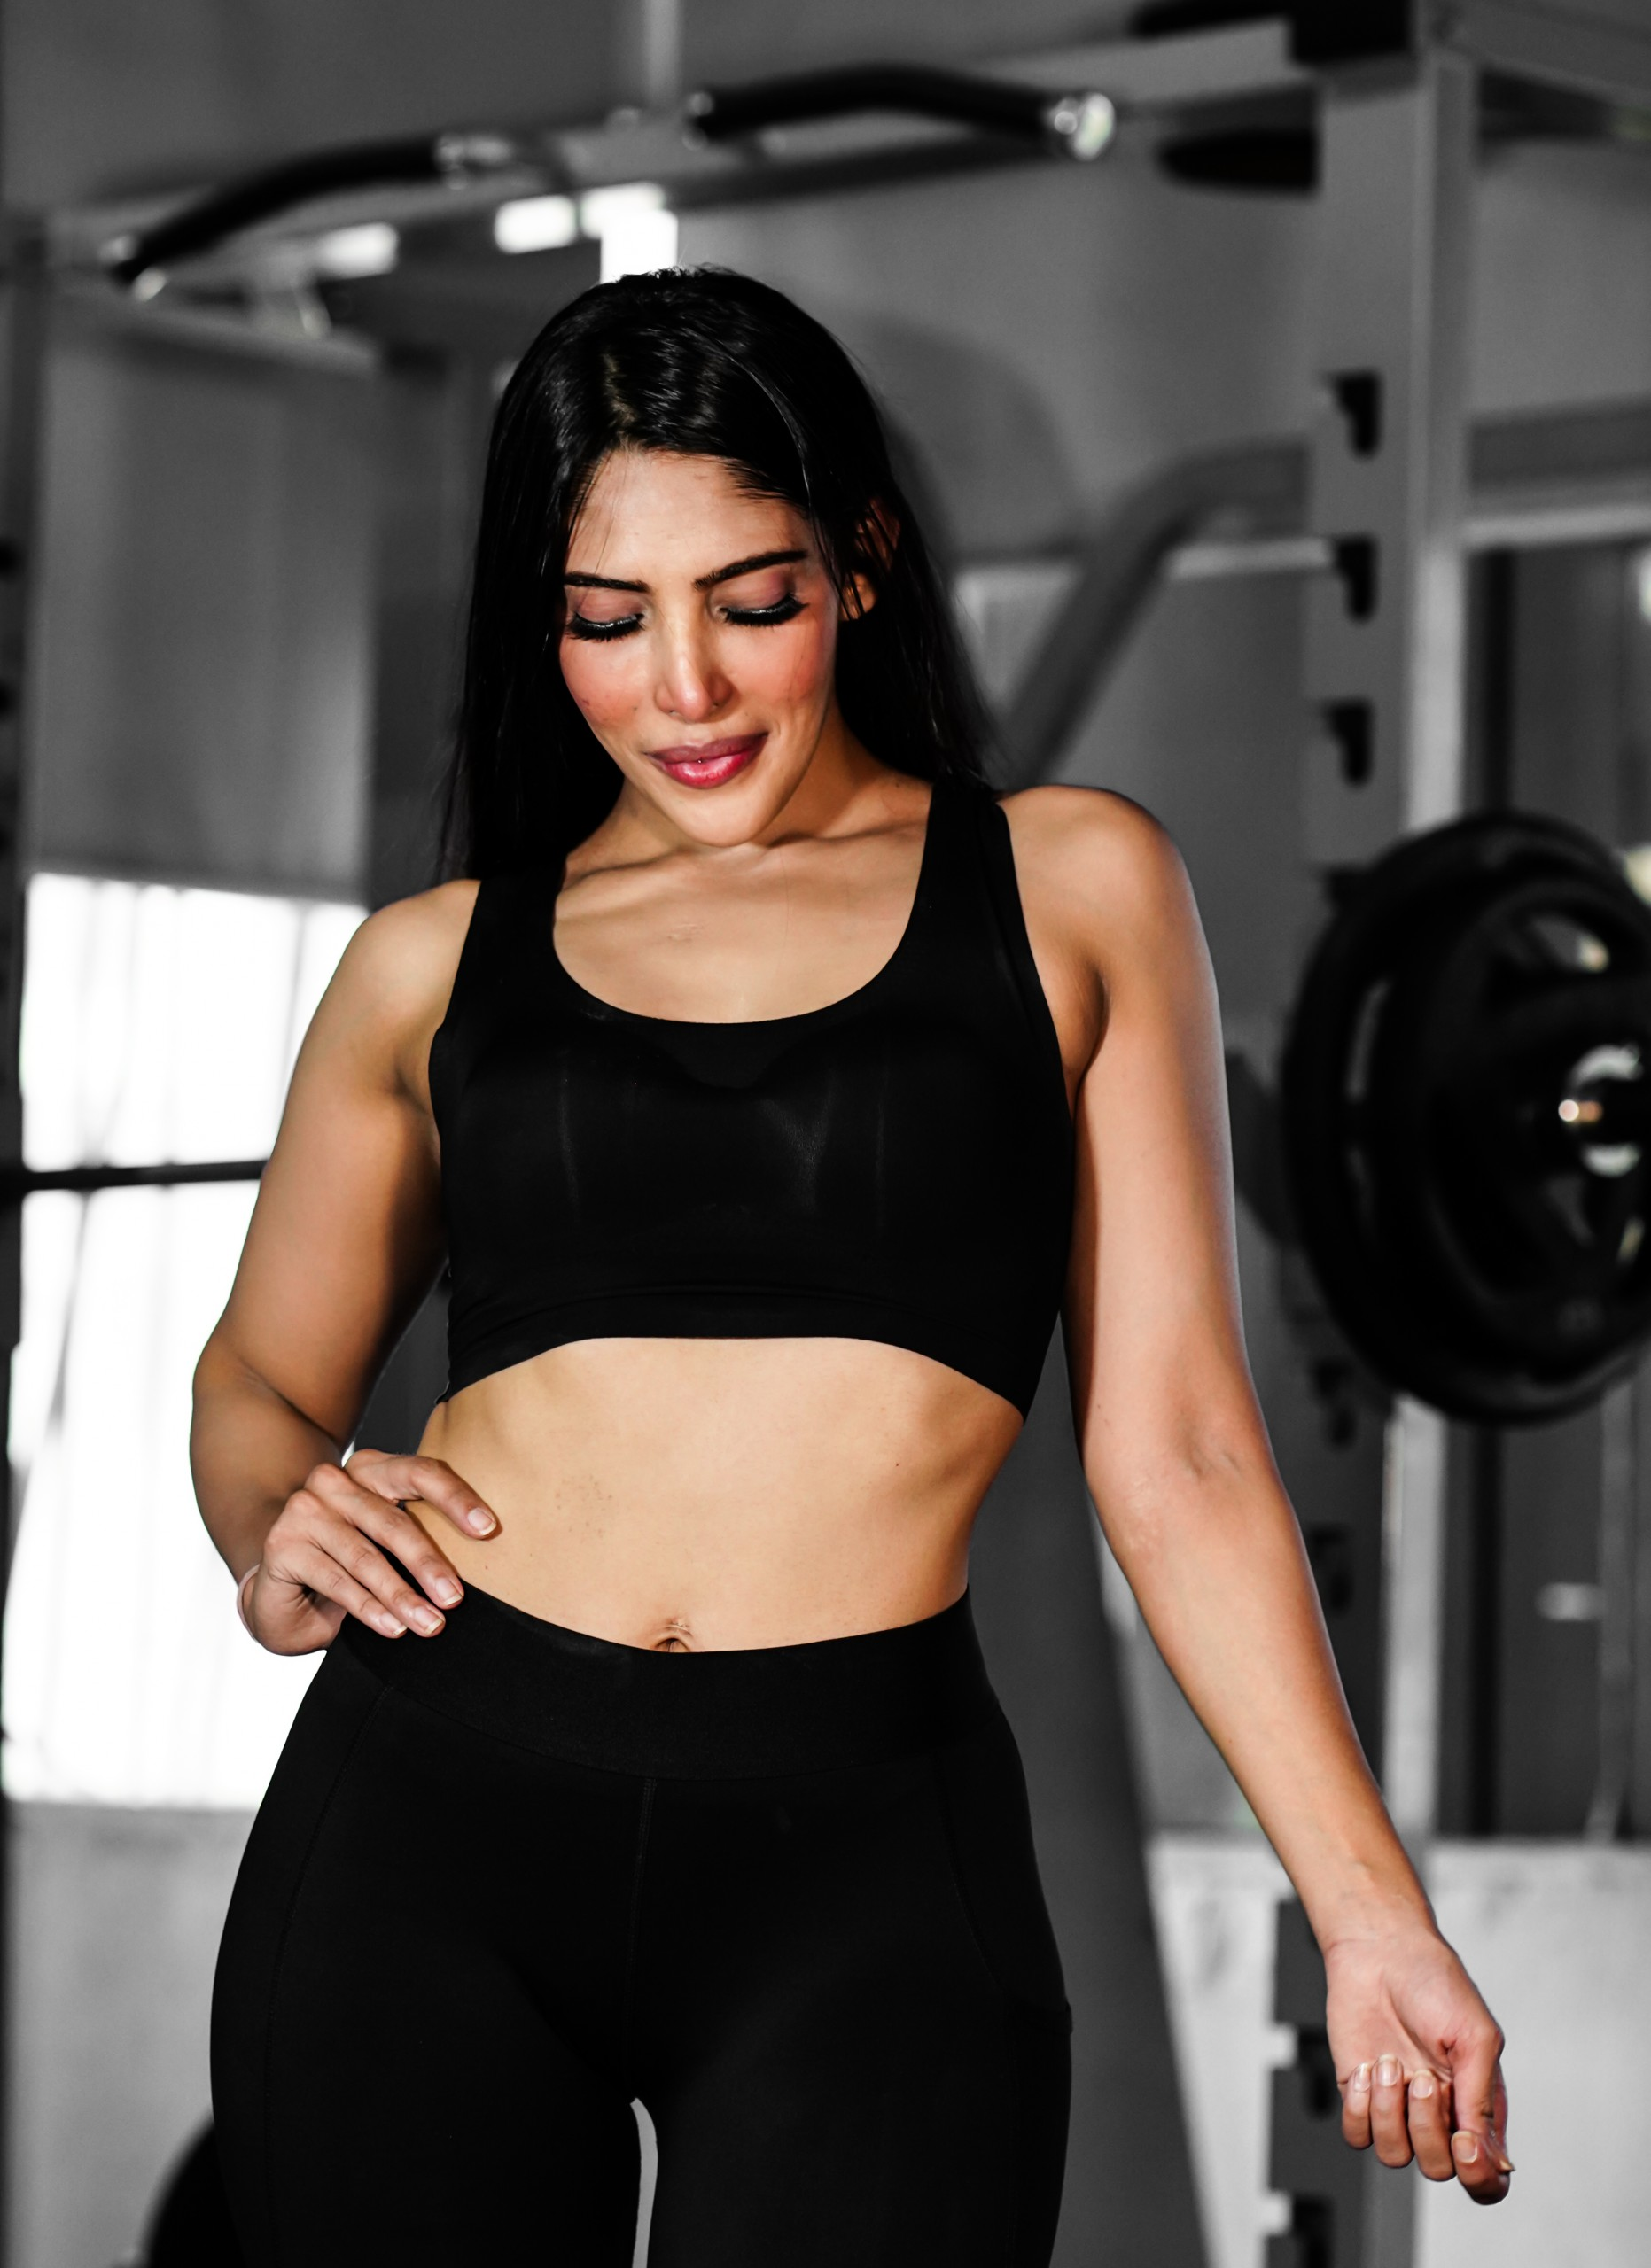 Young girl in black poses in gym